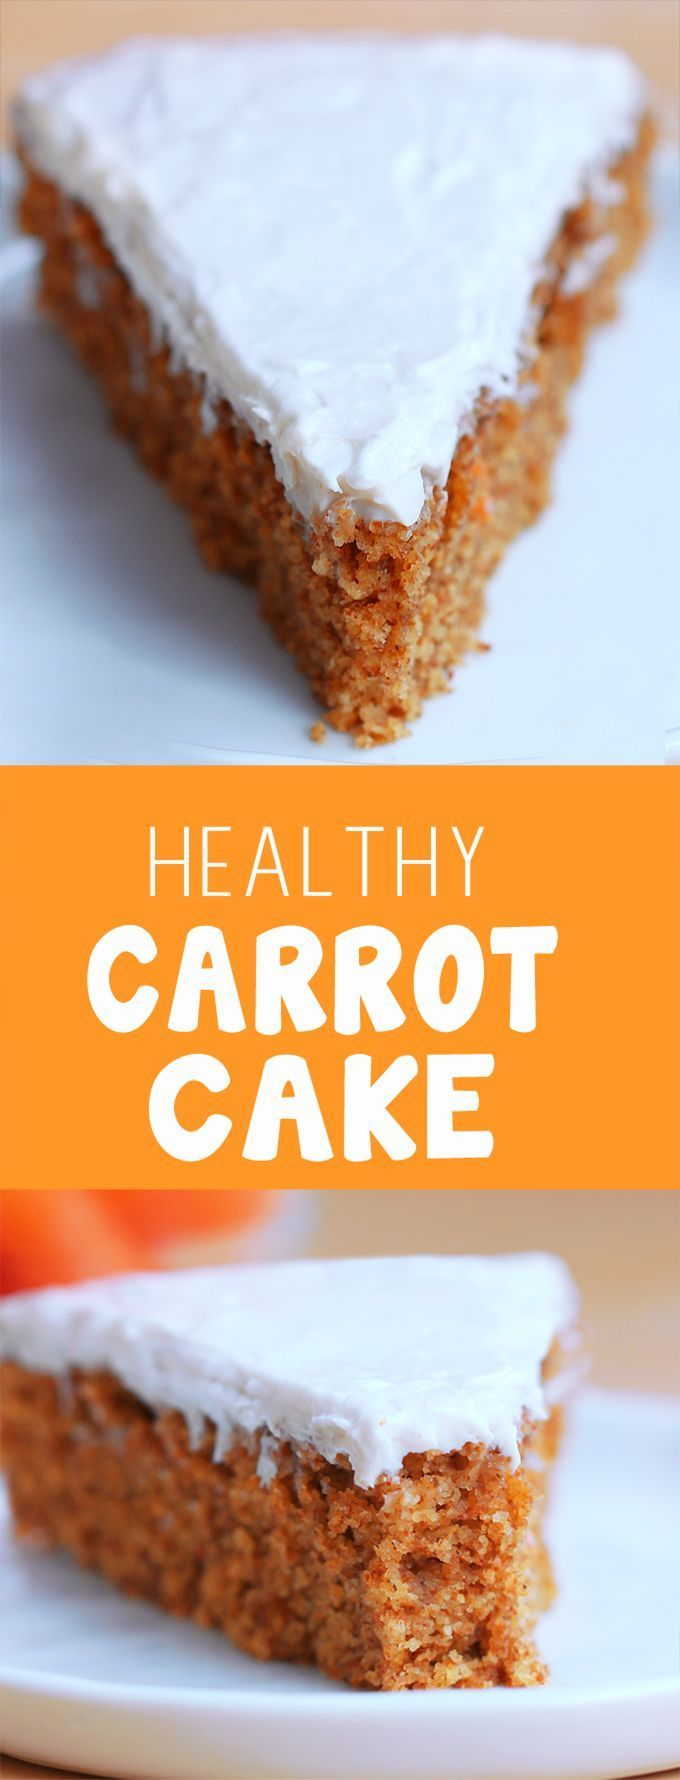 Super moist classic carrot cake with a secretly healthy cream cheese icing this is hands down my favorite carrot cake recipe